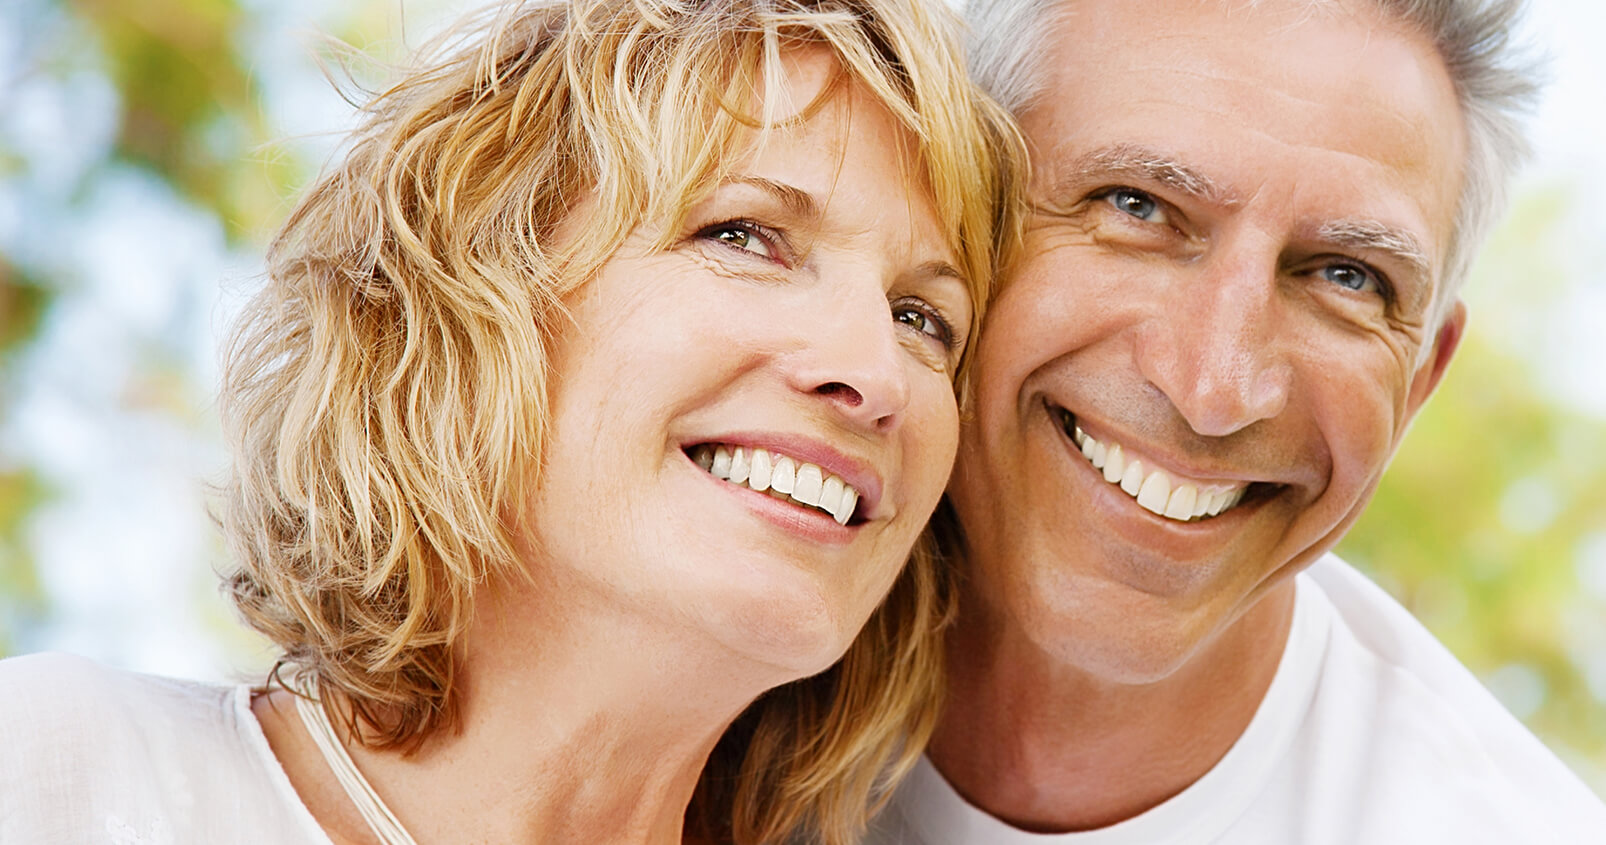 An Azusa, CA dentist, explains the benefits of porcelain crowns for weakened teeth